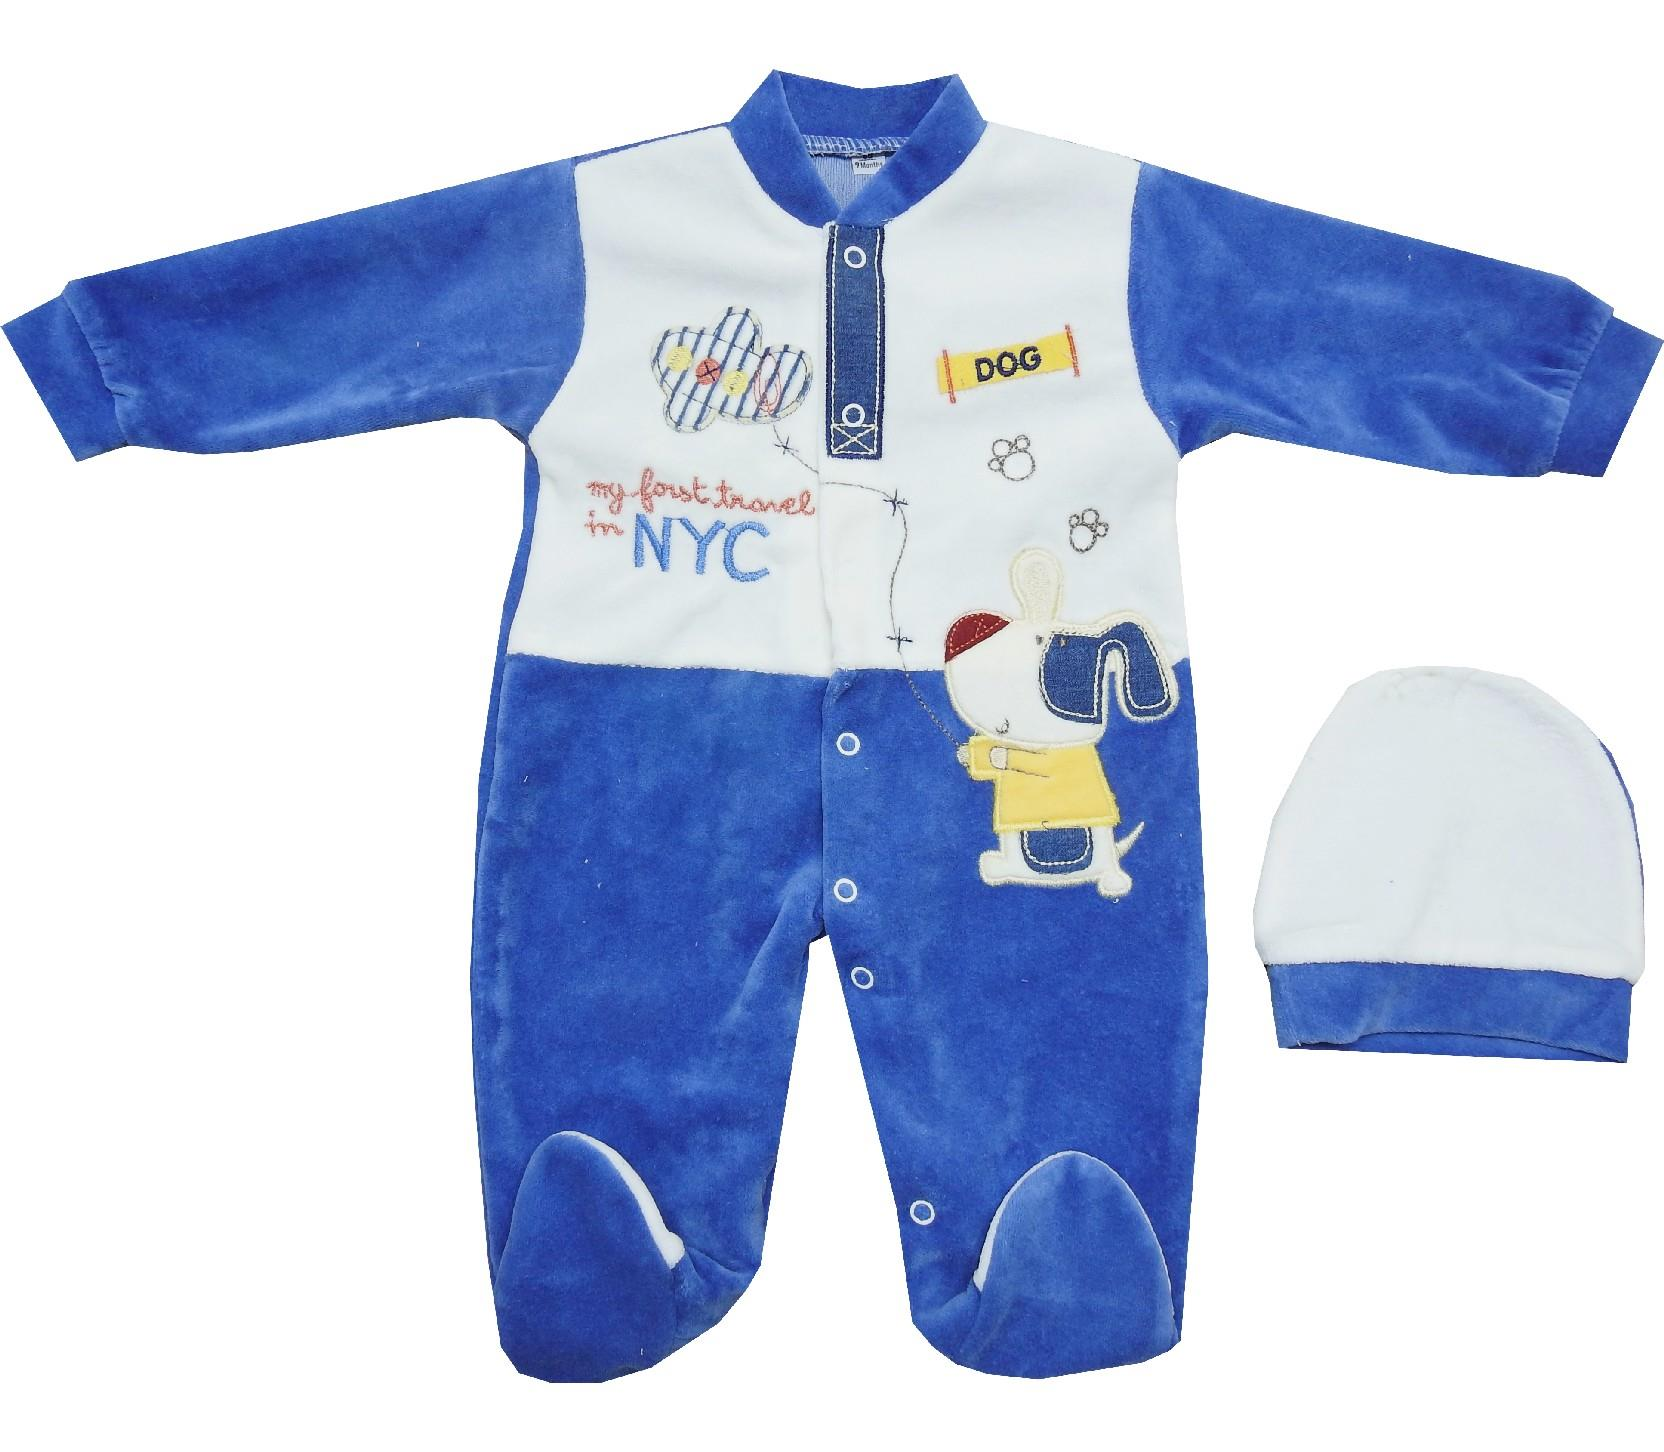 696 Wholesale NYC printed velvet romper for baby (0-3-6 month)